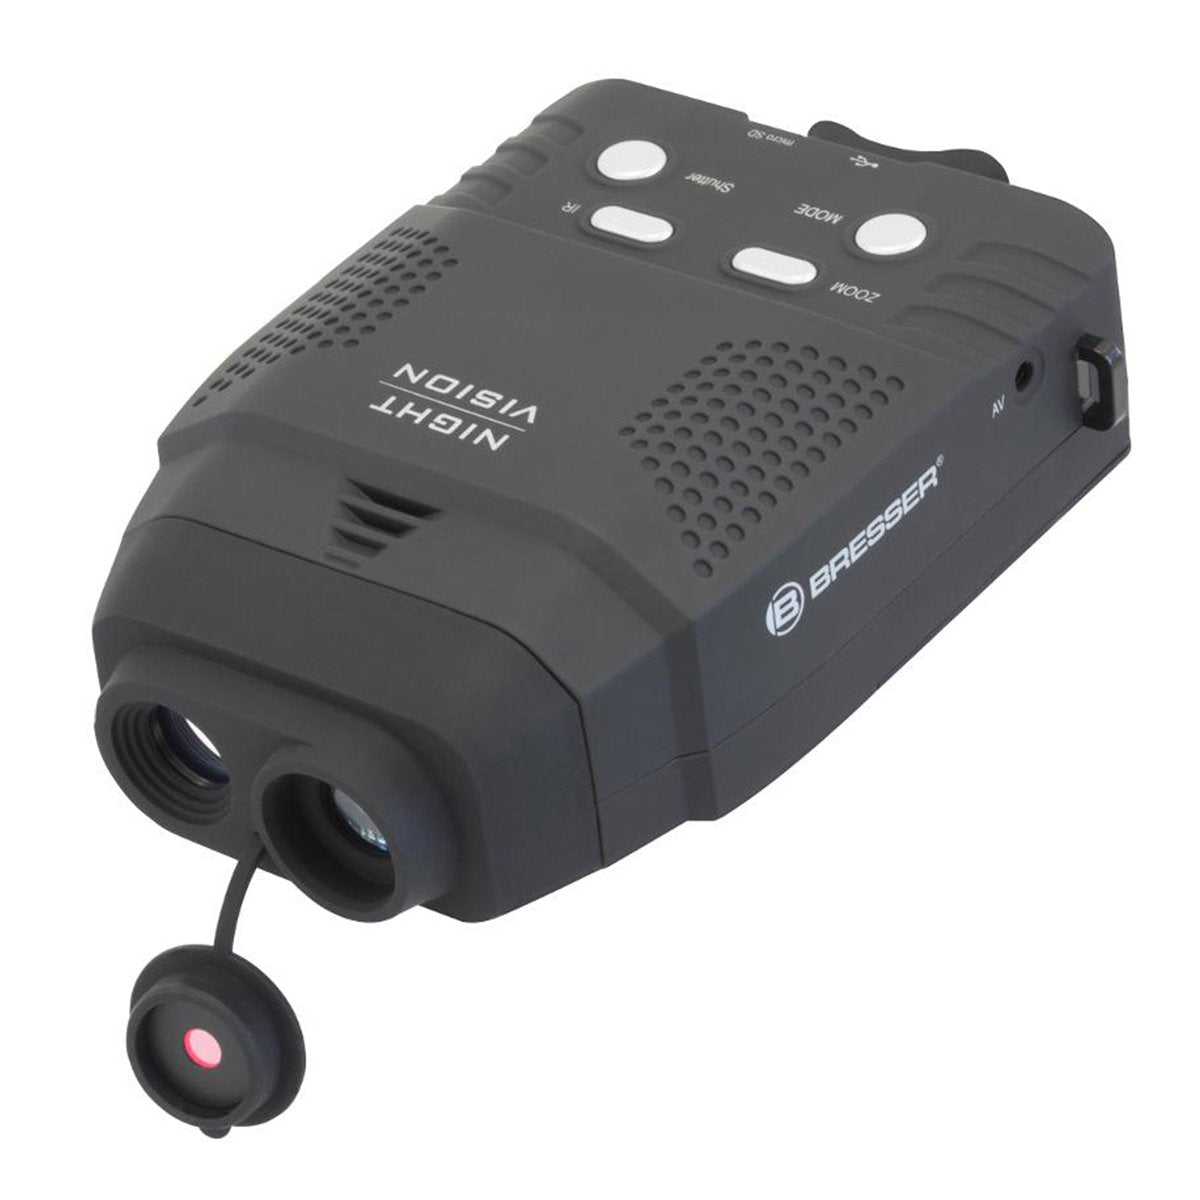 Bresser 3x14 Digital Night Vision Device with Recording Function - 18-77400